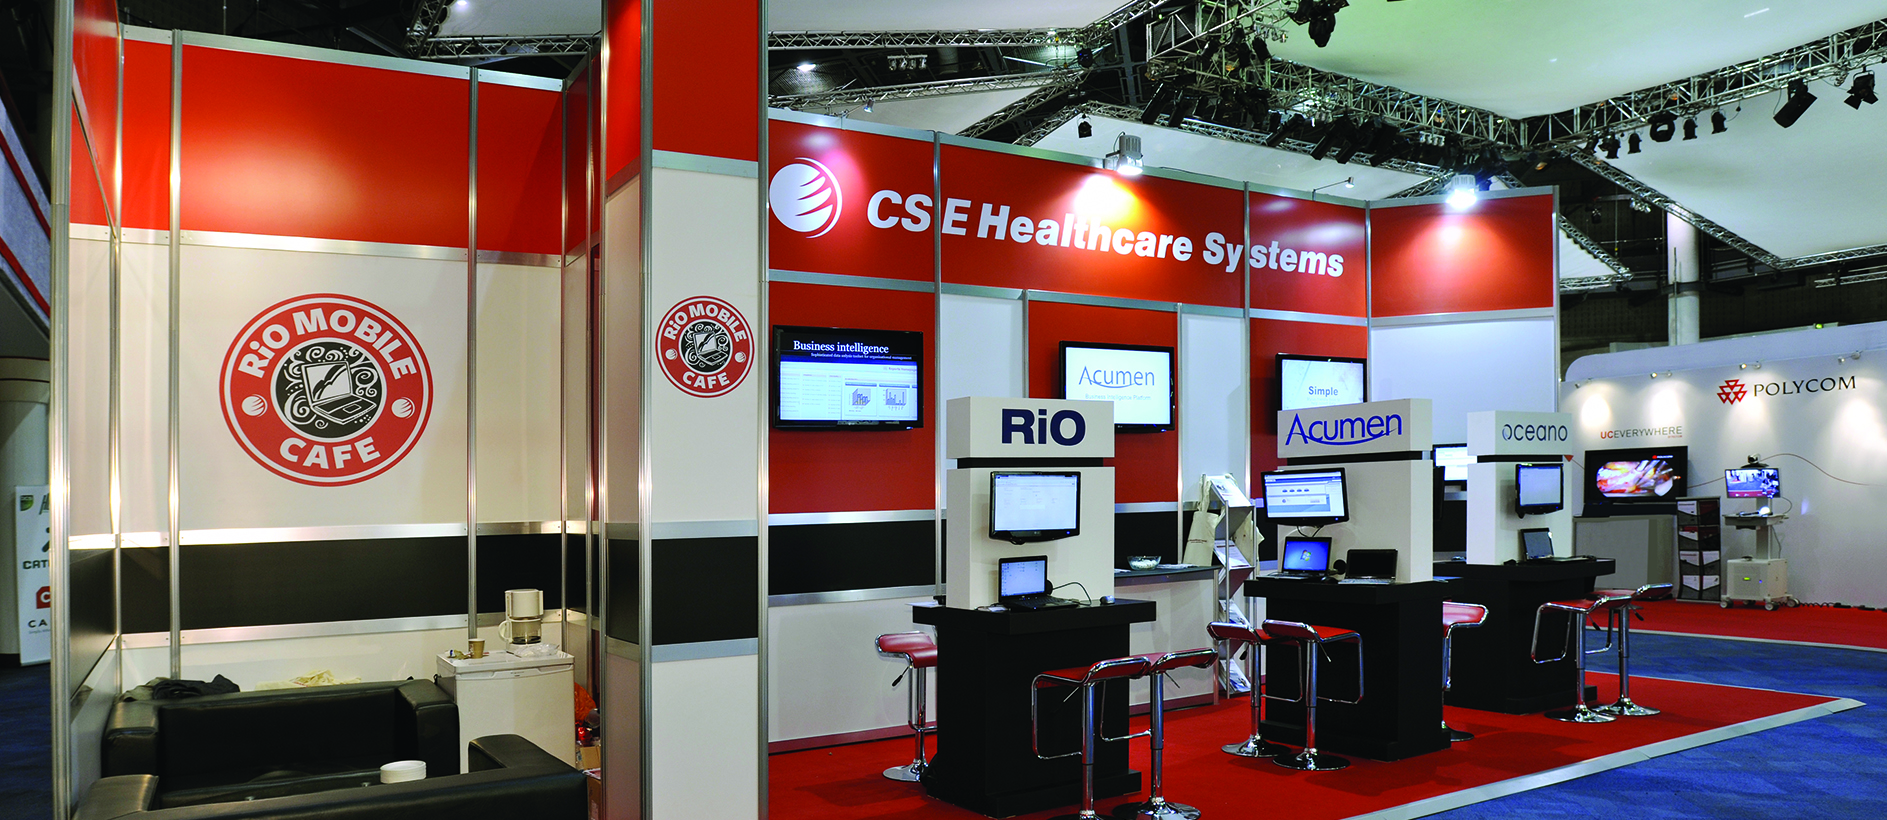 CSE Healthcare modular exhibition stand